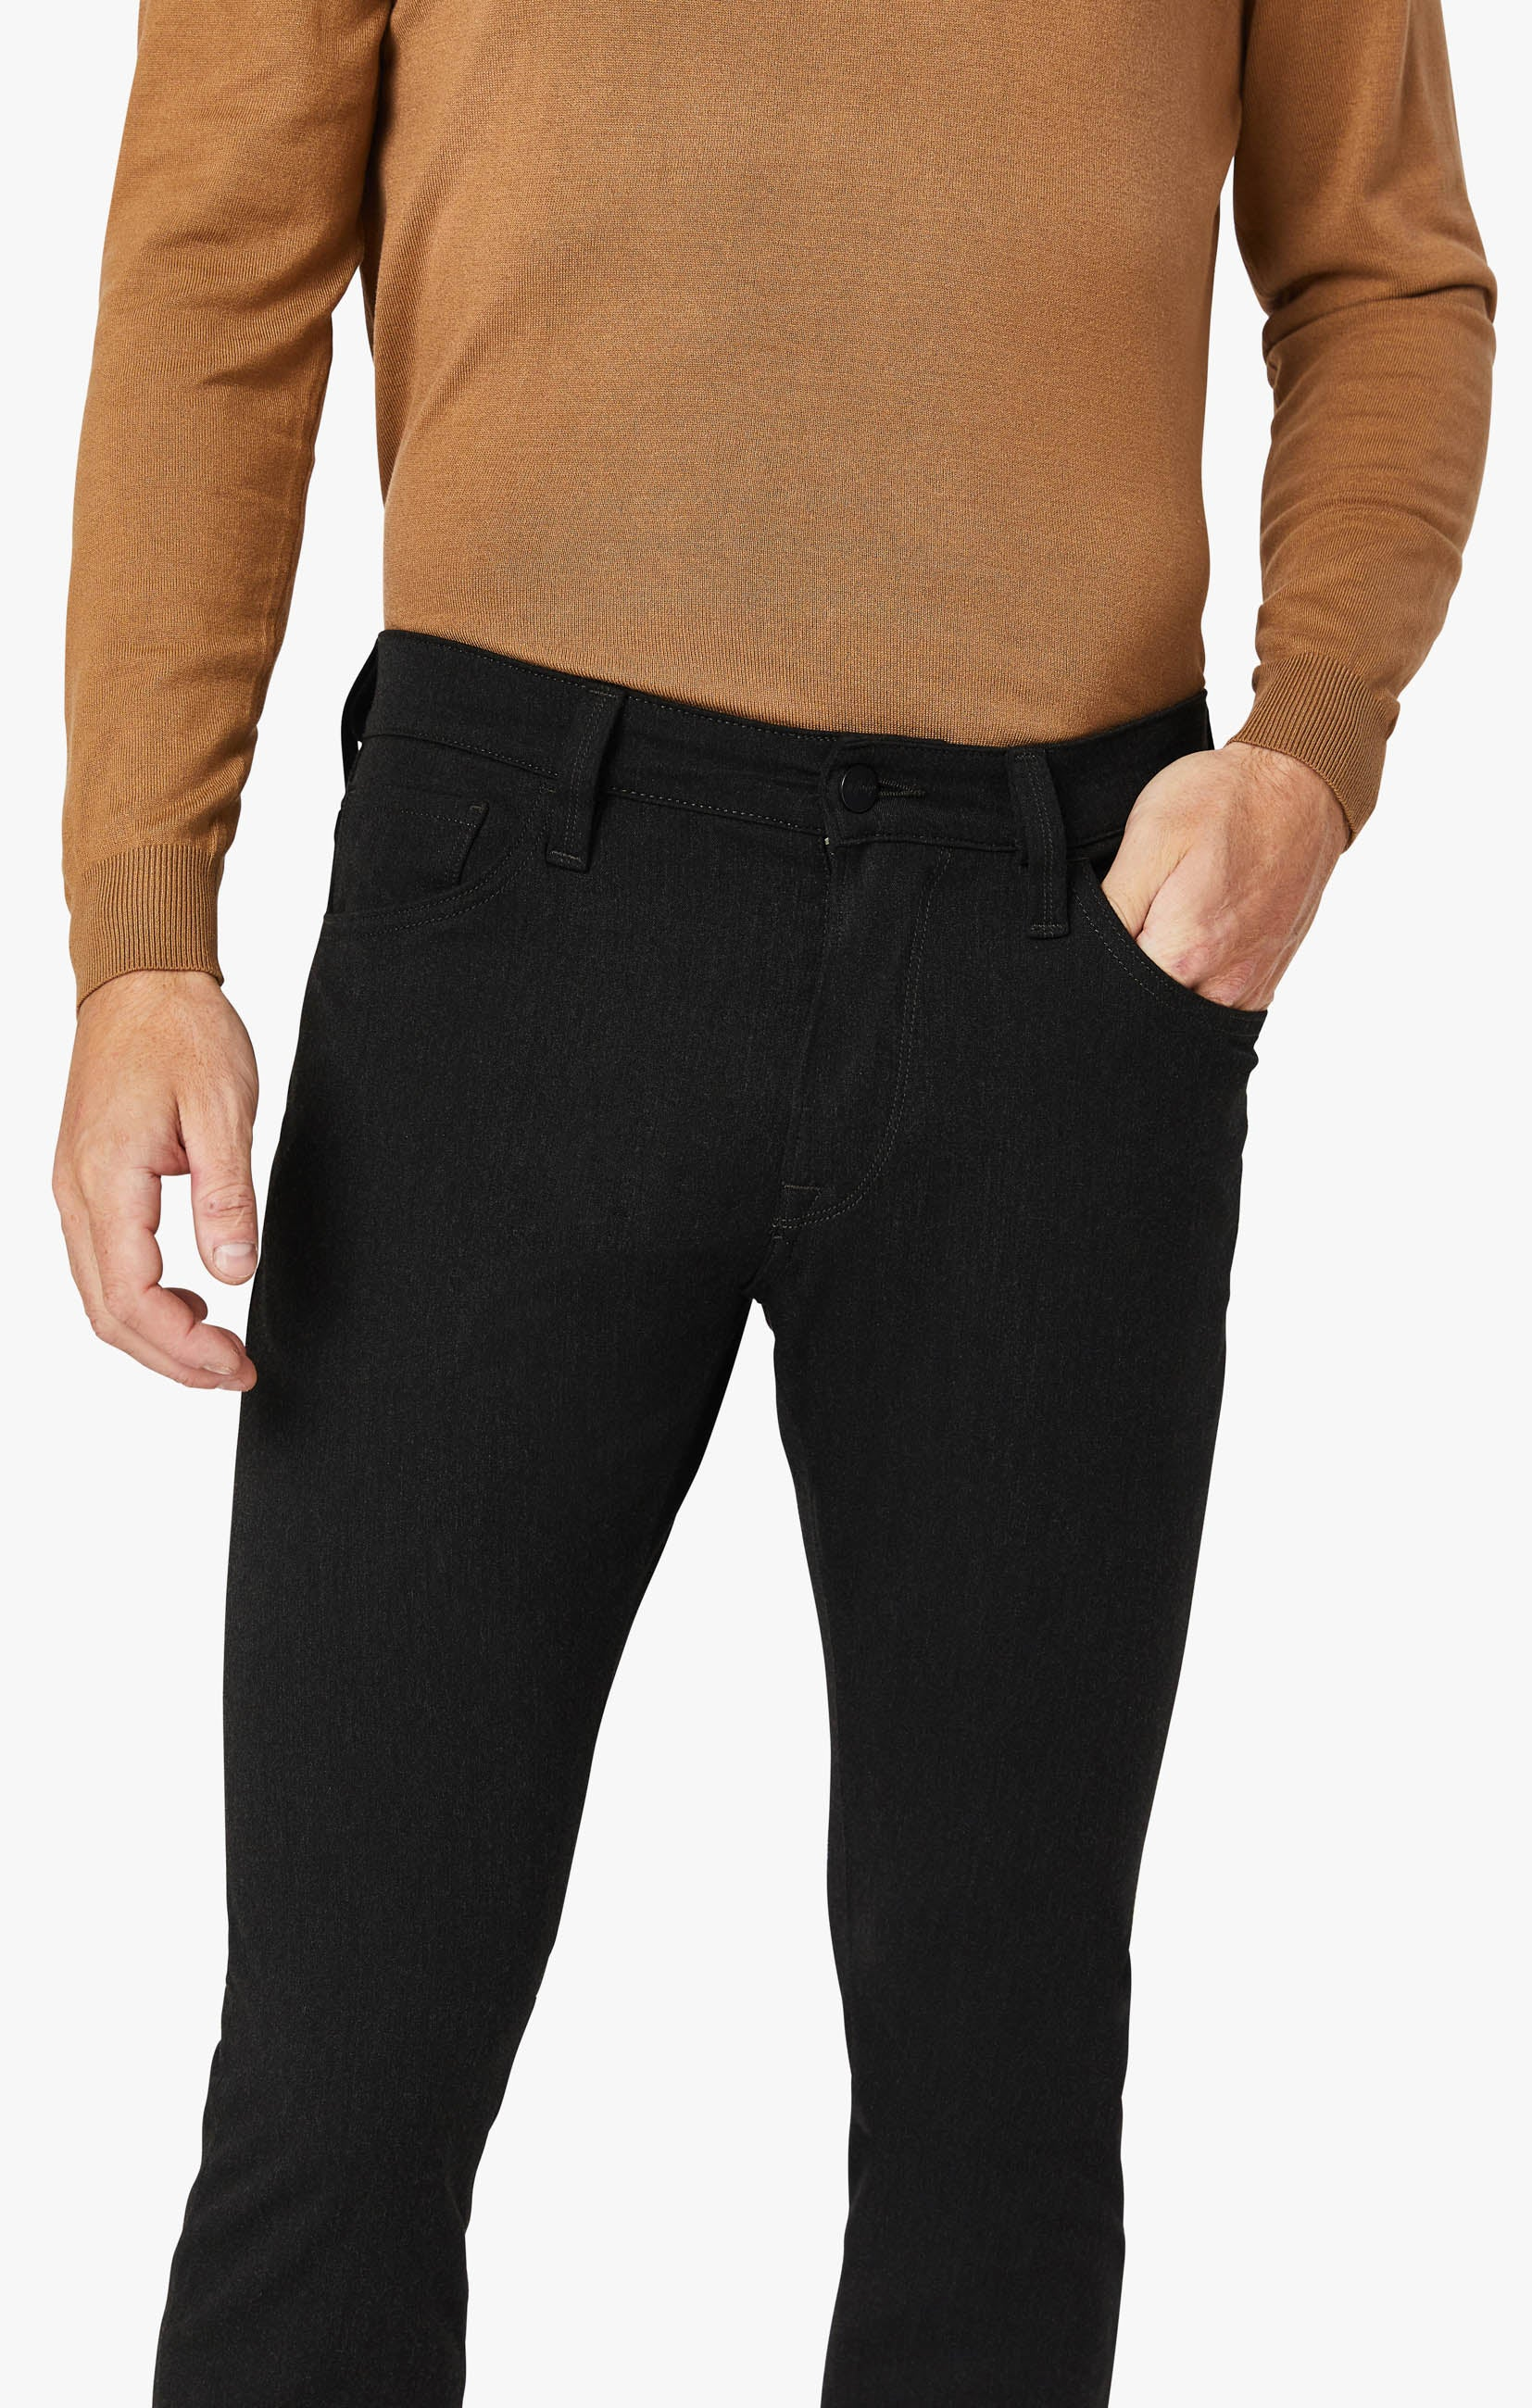 Courage Straight Leg Pants in Charcoal Winter Cashmere Image 2